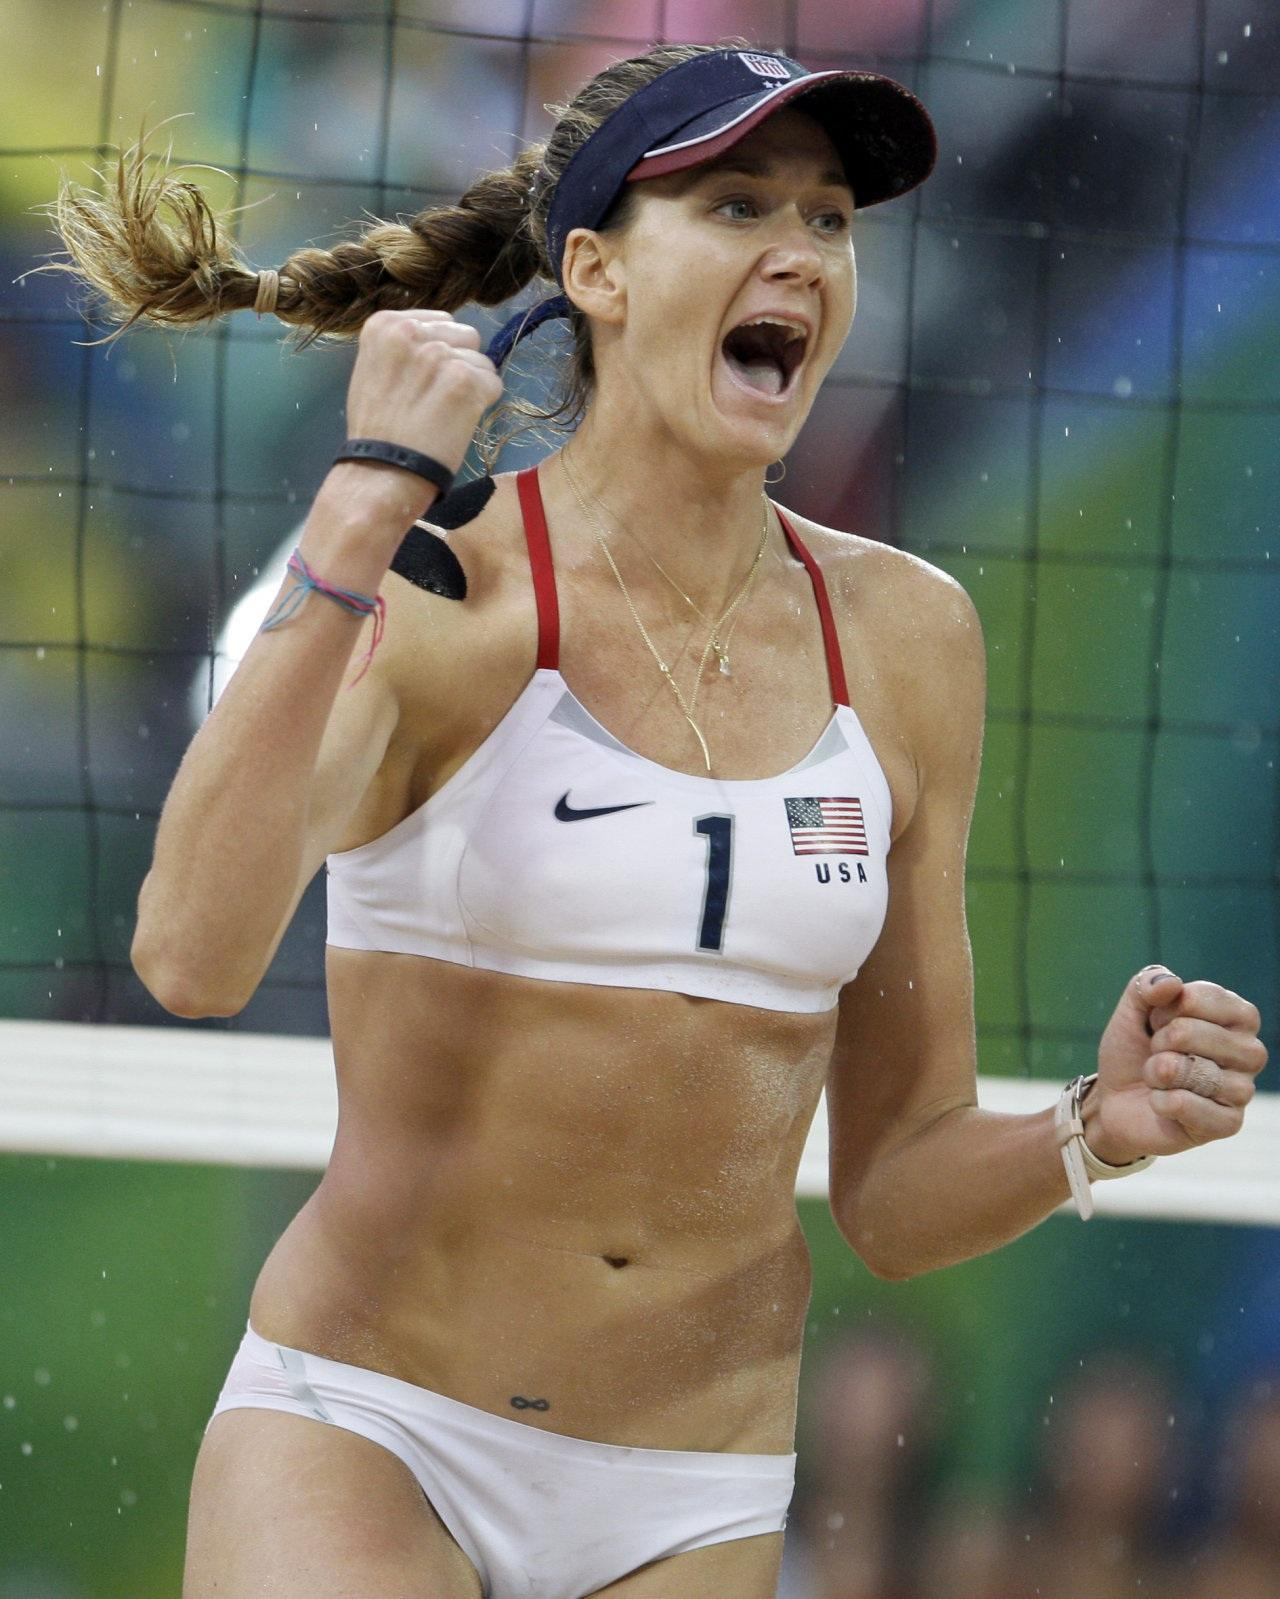 volleyball olympic games and chick boom Relive the moments that went down in history from the atlanta 1996 summer  olympics  however, on 27 july tragedy struck when a terrorist bomb exploded  in the  beach volleyball, mountain biking, lightweight rowing and women's  football.